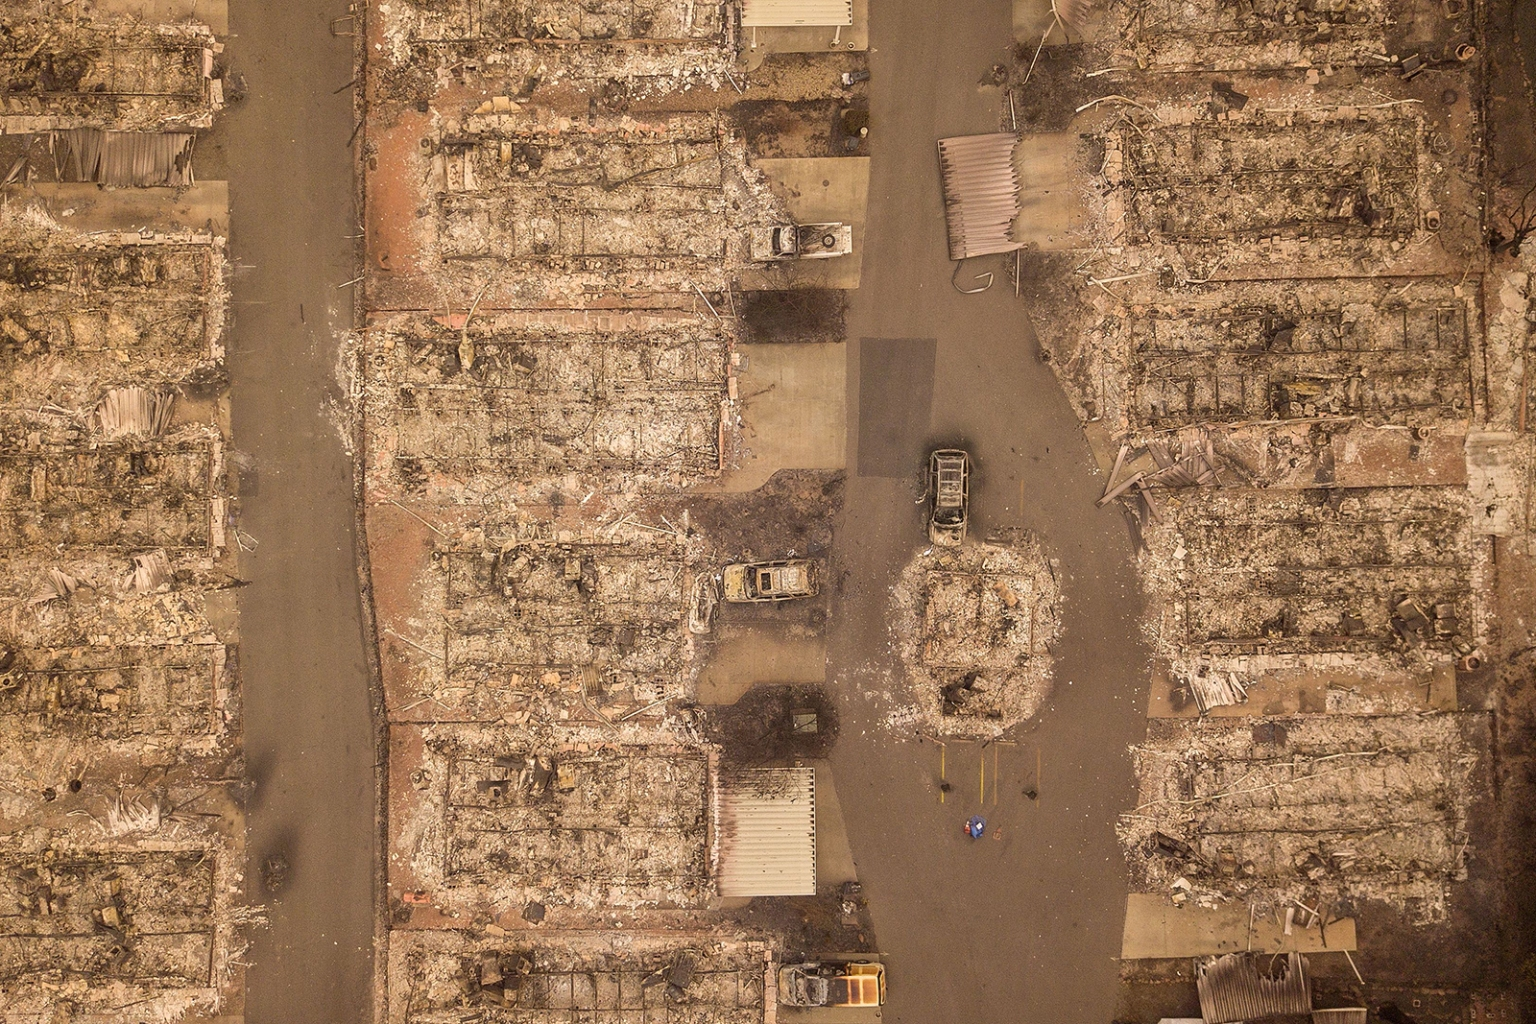 A neighborhood devastated by wildfires in Paradise, California, on Nov. 15. JOSH EDELSON/AFP/Getty Images